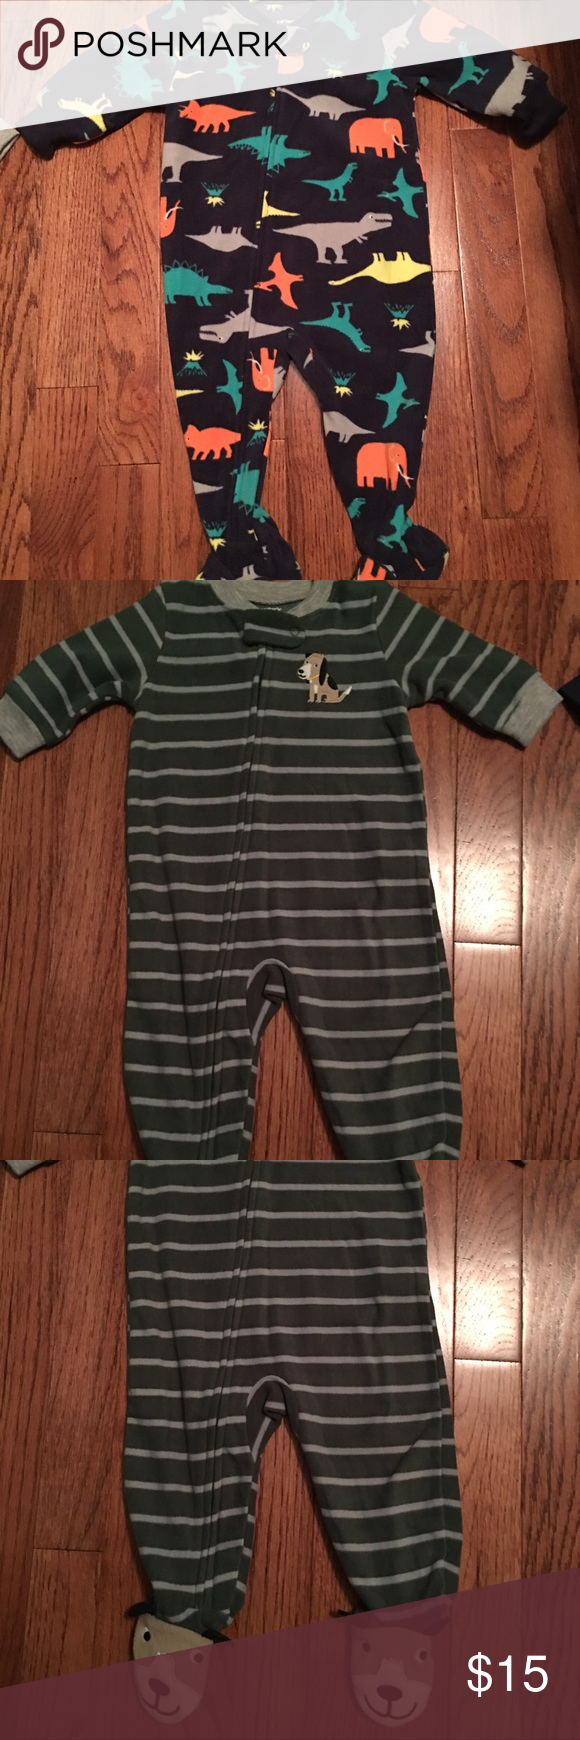 3 pair Carter's pajamas No tags but never worn. Perfect condition. 2 are zip up-6 months. The button up is 3-6months. Warmer material for all three. Carter's Pajamas